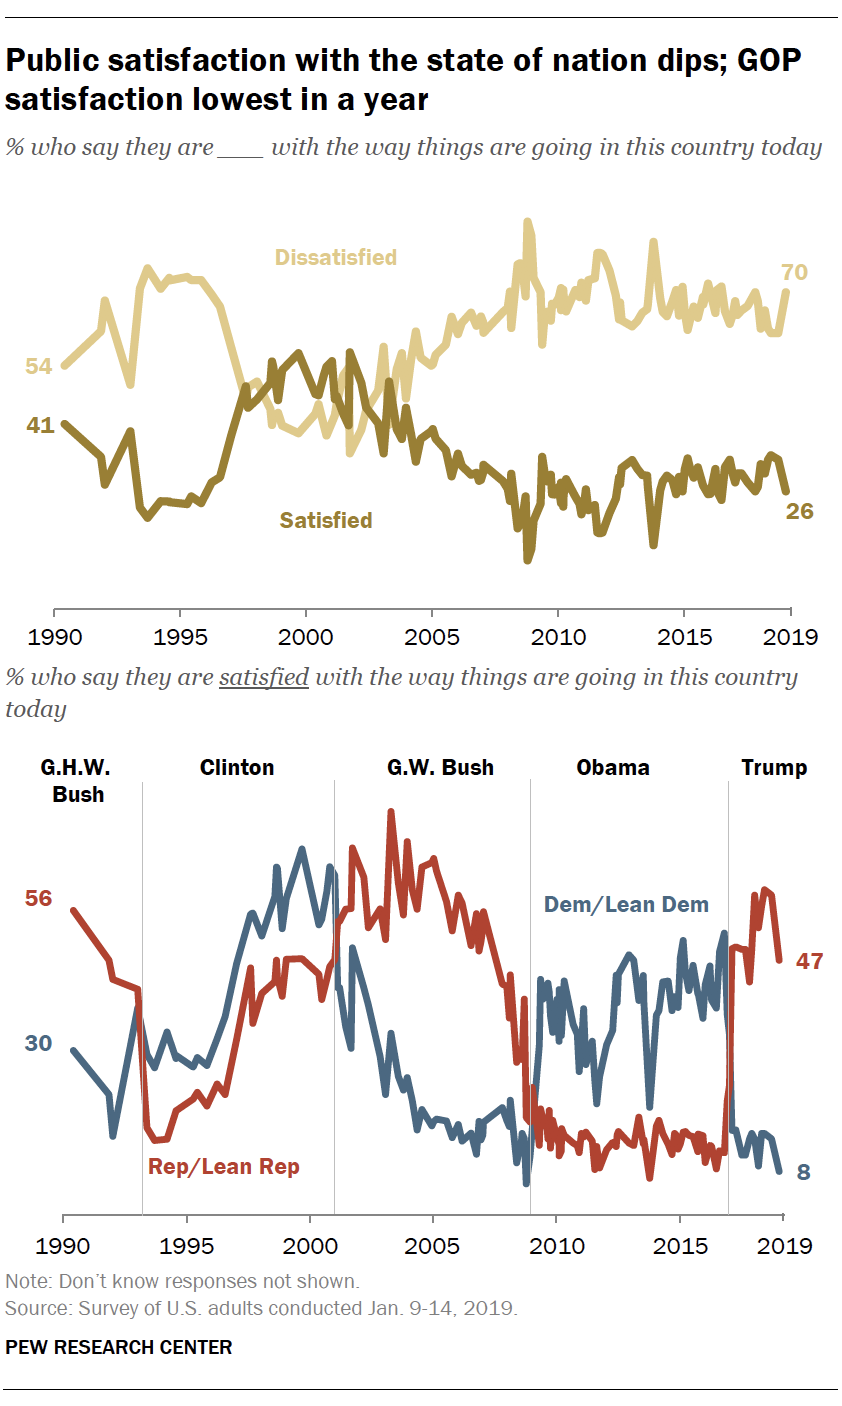 Public satisfaction with the state of nation dips; GOP satisfaction lowest in a year